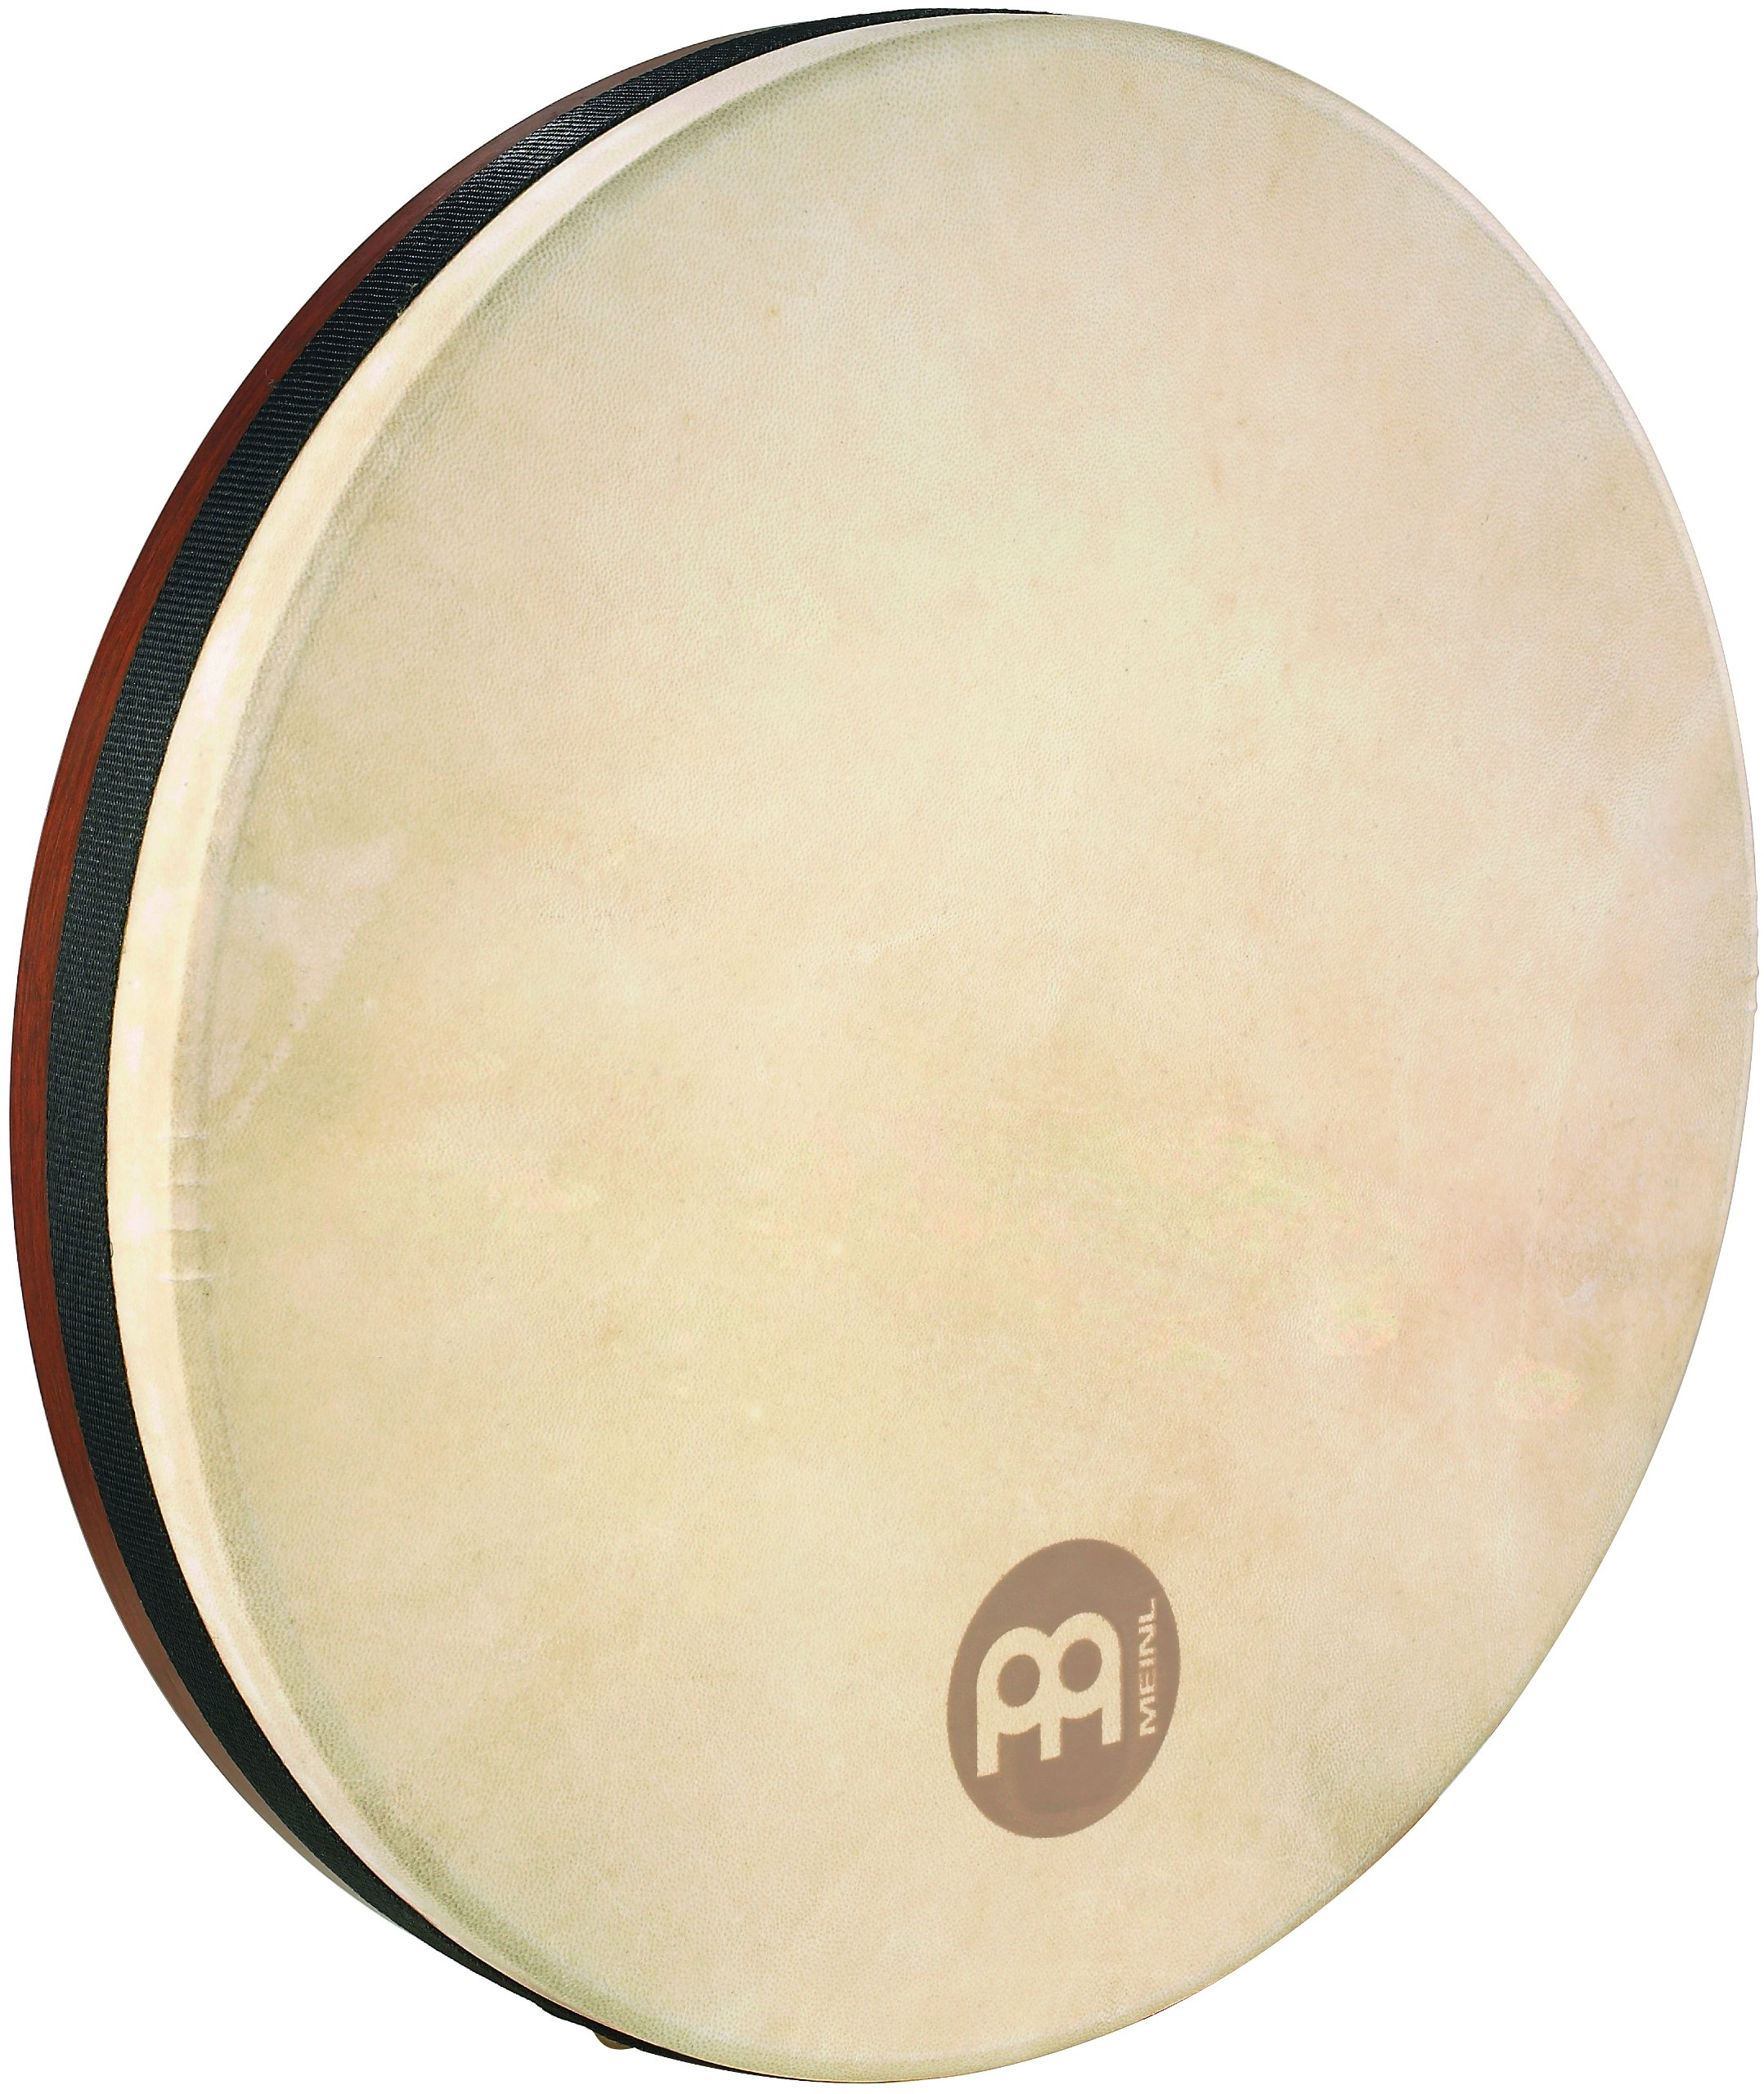 Meinl Percussion FD16BE 16-Inch Goat Skin Bendir, African Brown by Meinl Percussion